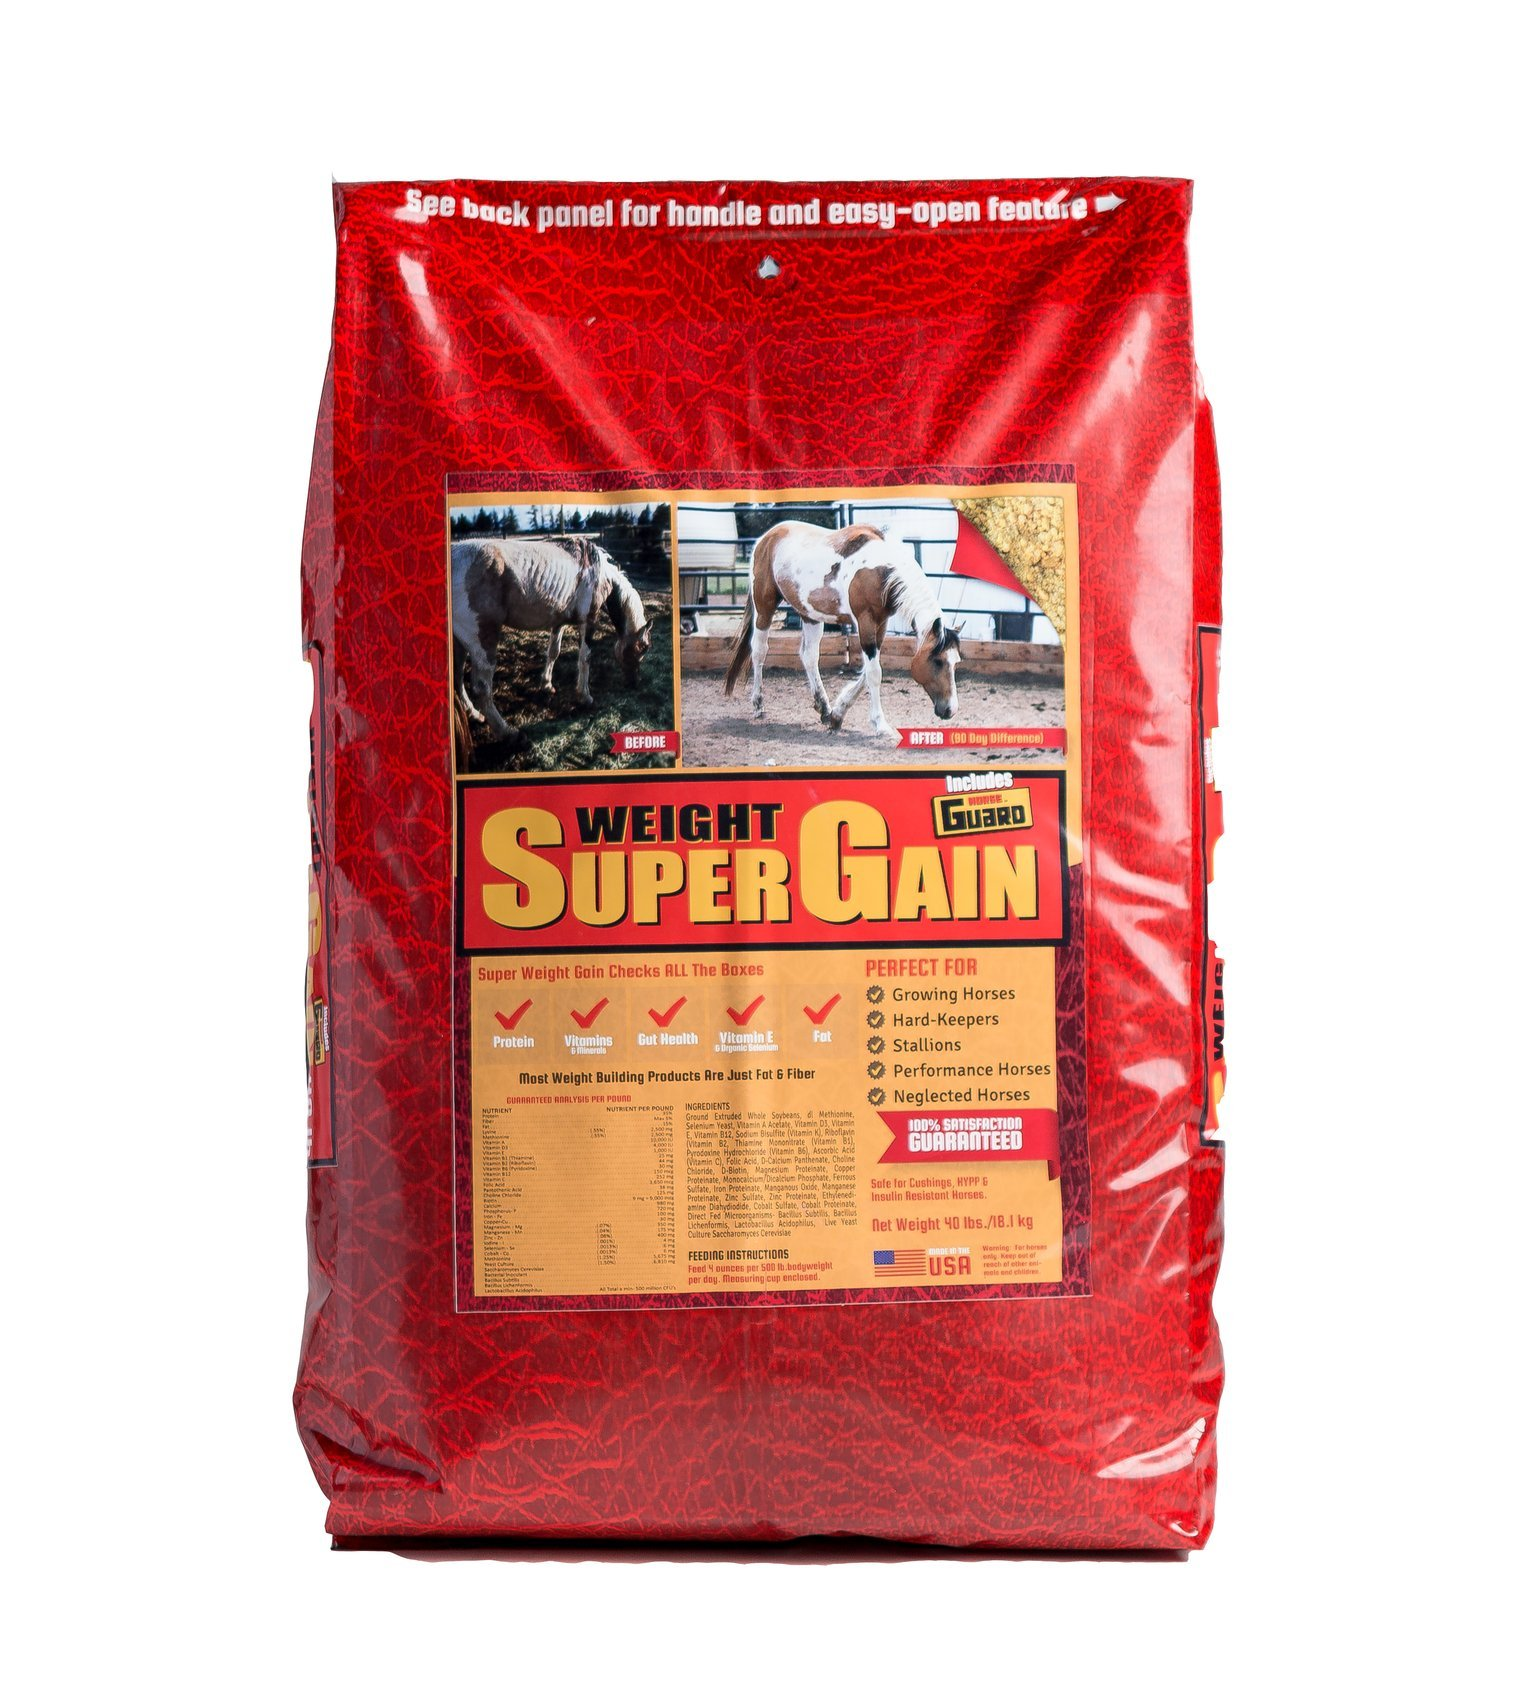 Horse Guard Super Weight Gain Equine Vitamin Mineral, Probiotic & Weight Gain Supplement, 40 lb by Horse Guard